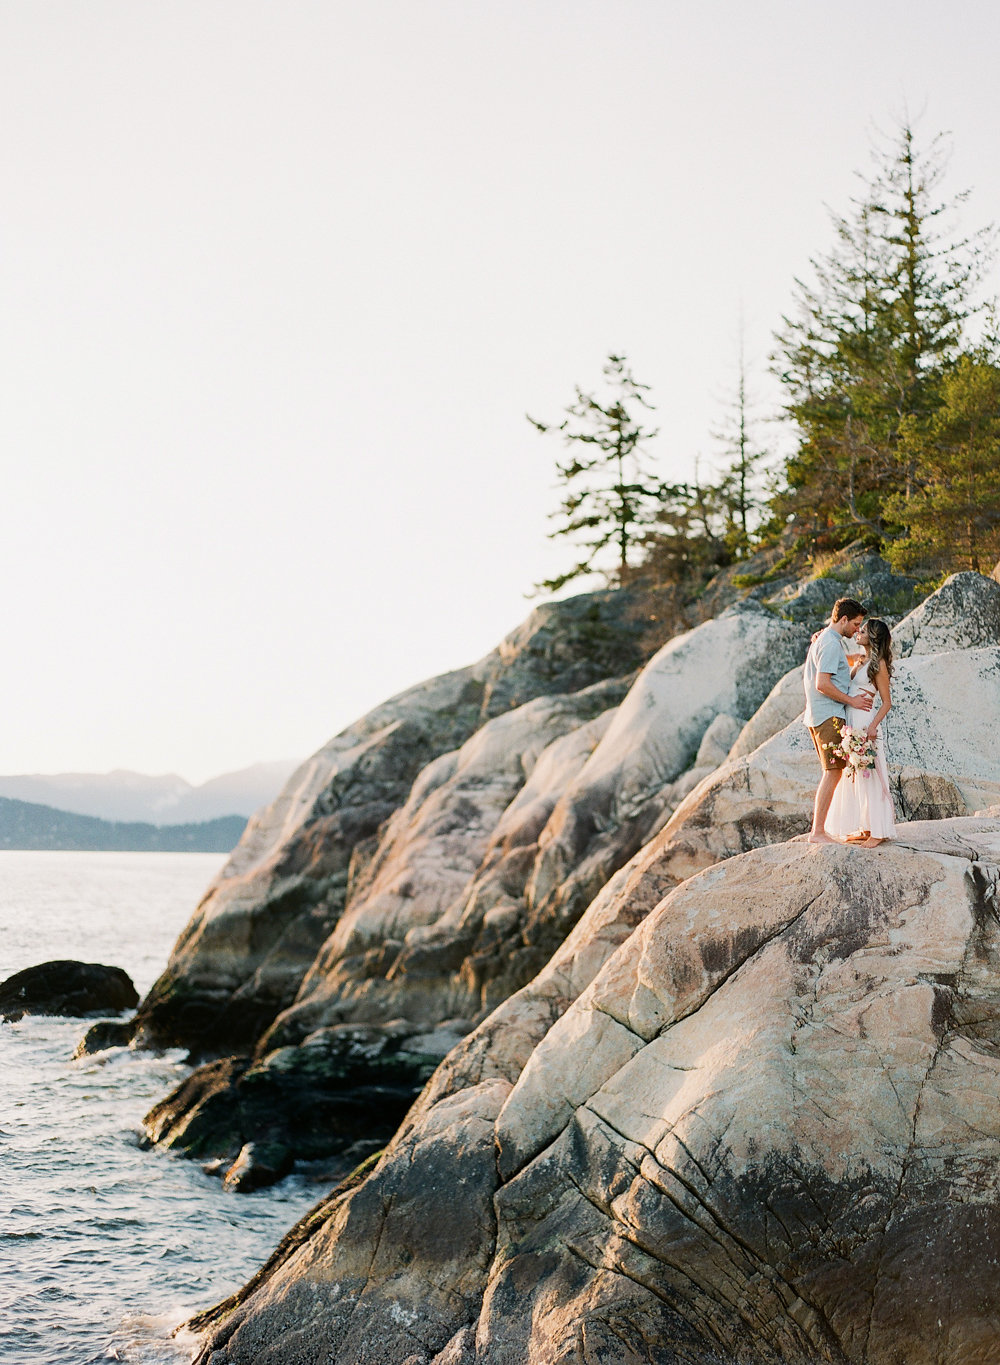 Vancouver Engagement Session | Vasia Photography | Vancouver Wedding | Vancouver Photographer | BC Wedding | BC Photographer | Canadian Wedding Blog | Joy Wed